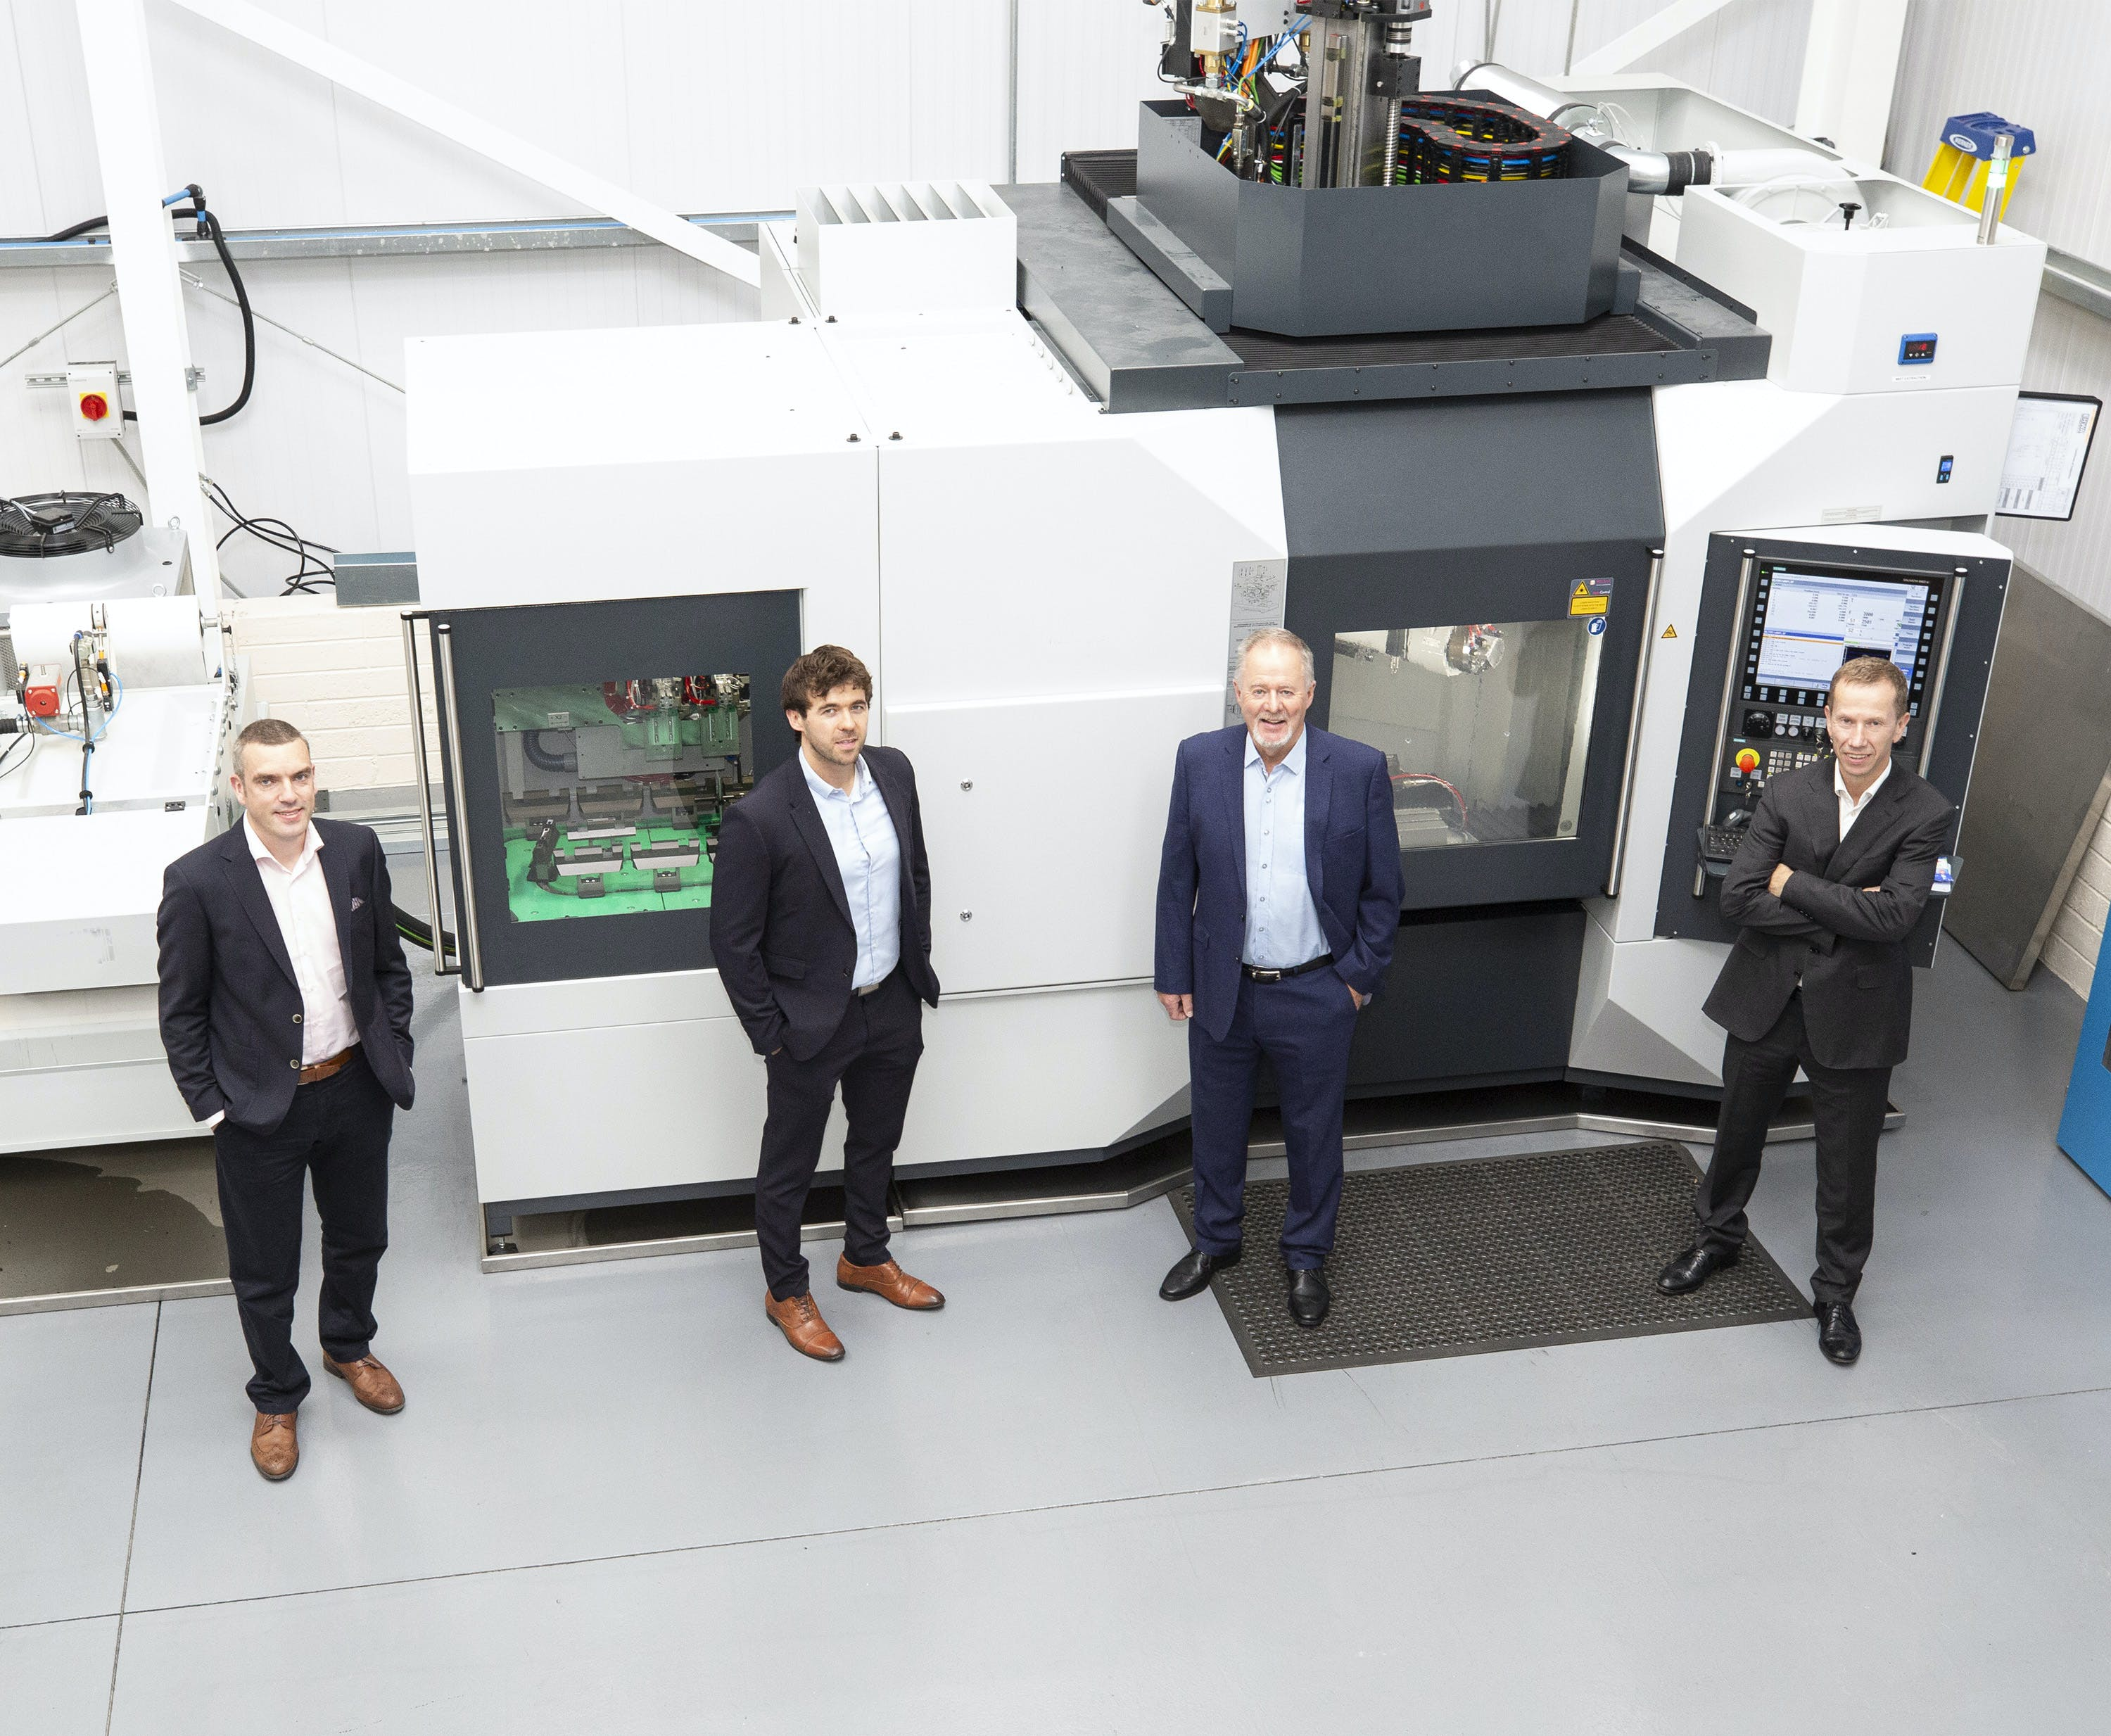 BGF Invests in Croom Precision Medical